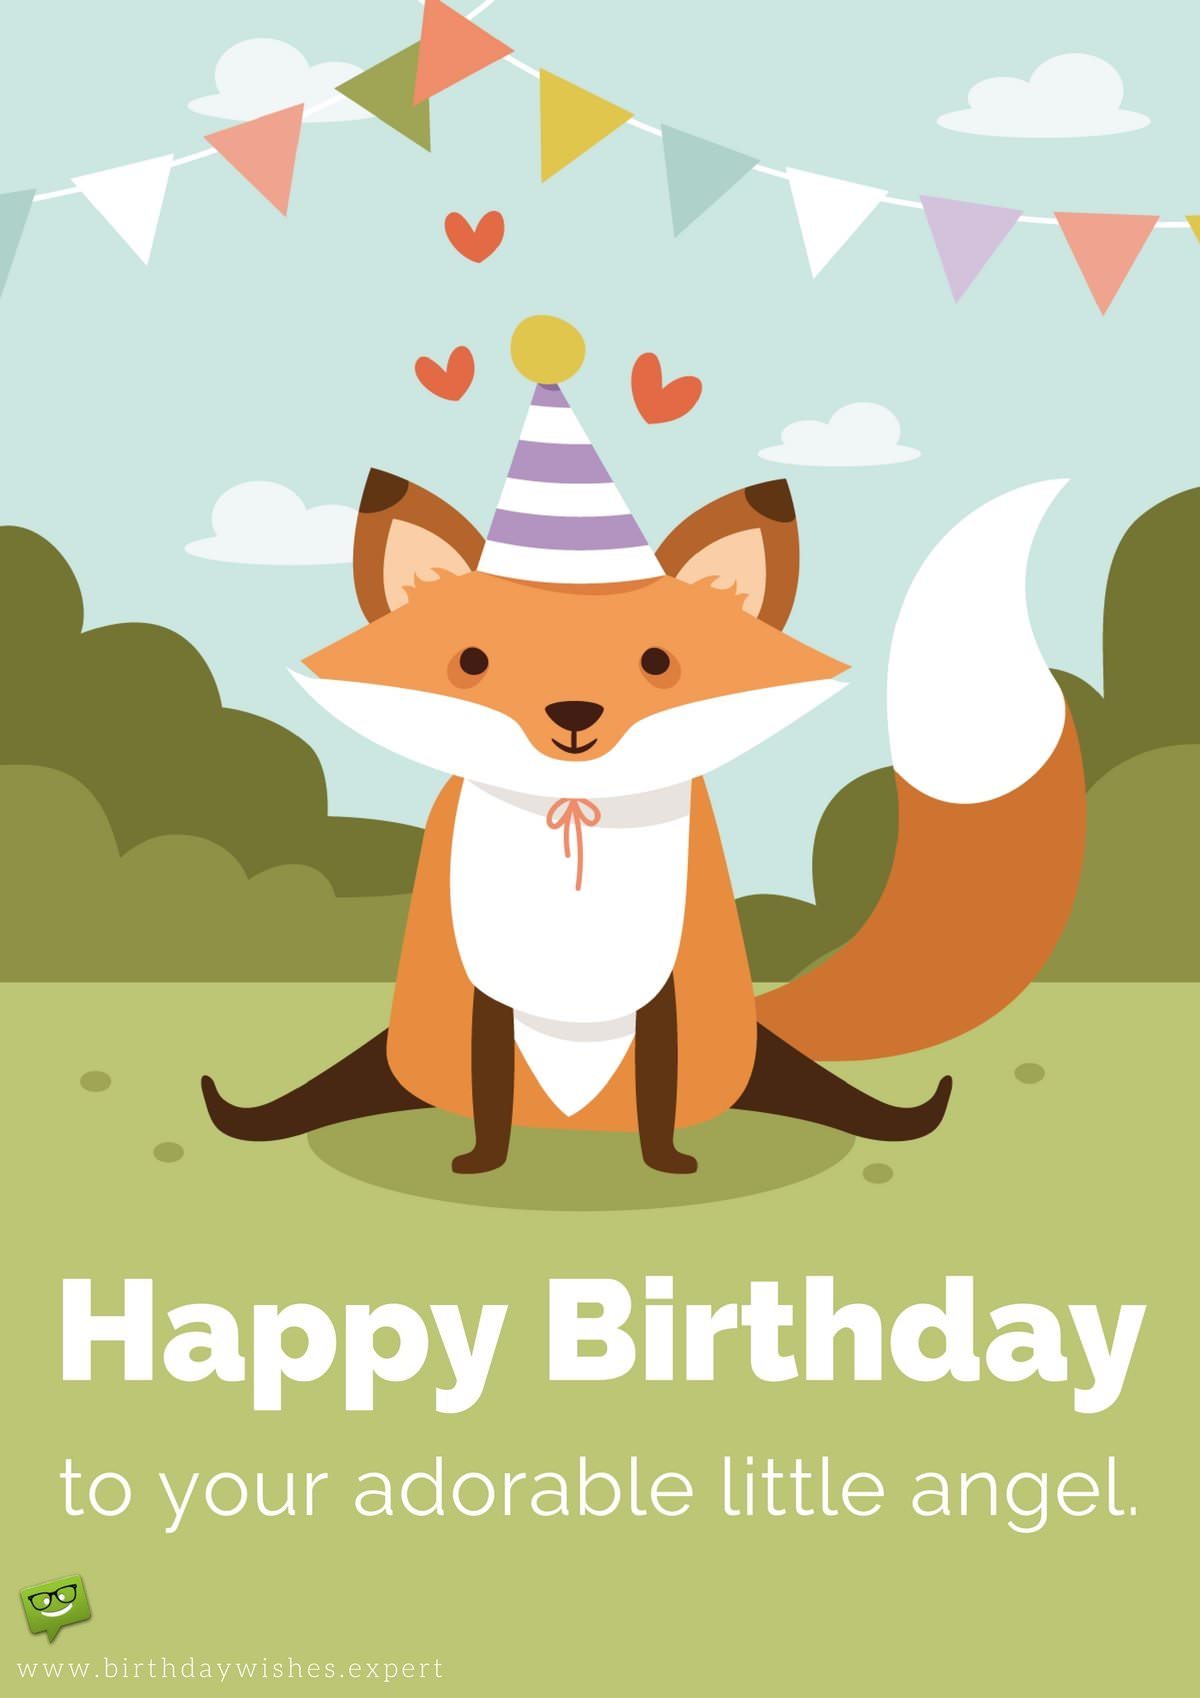 200 Free Birthday eCards for Friends and Family Part 3